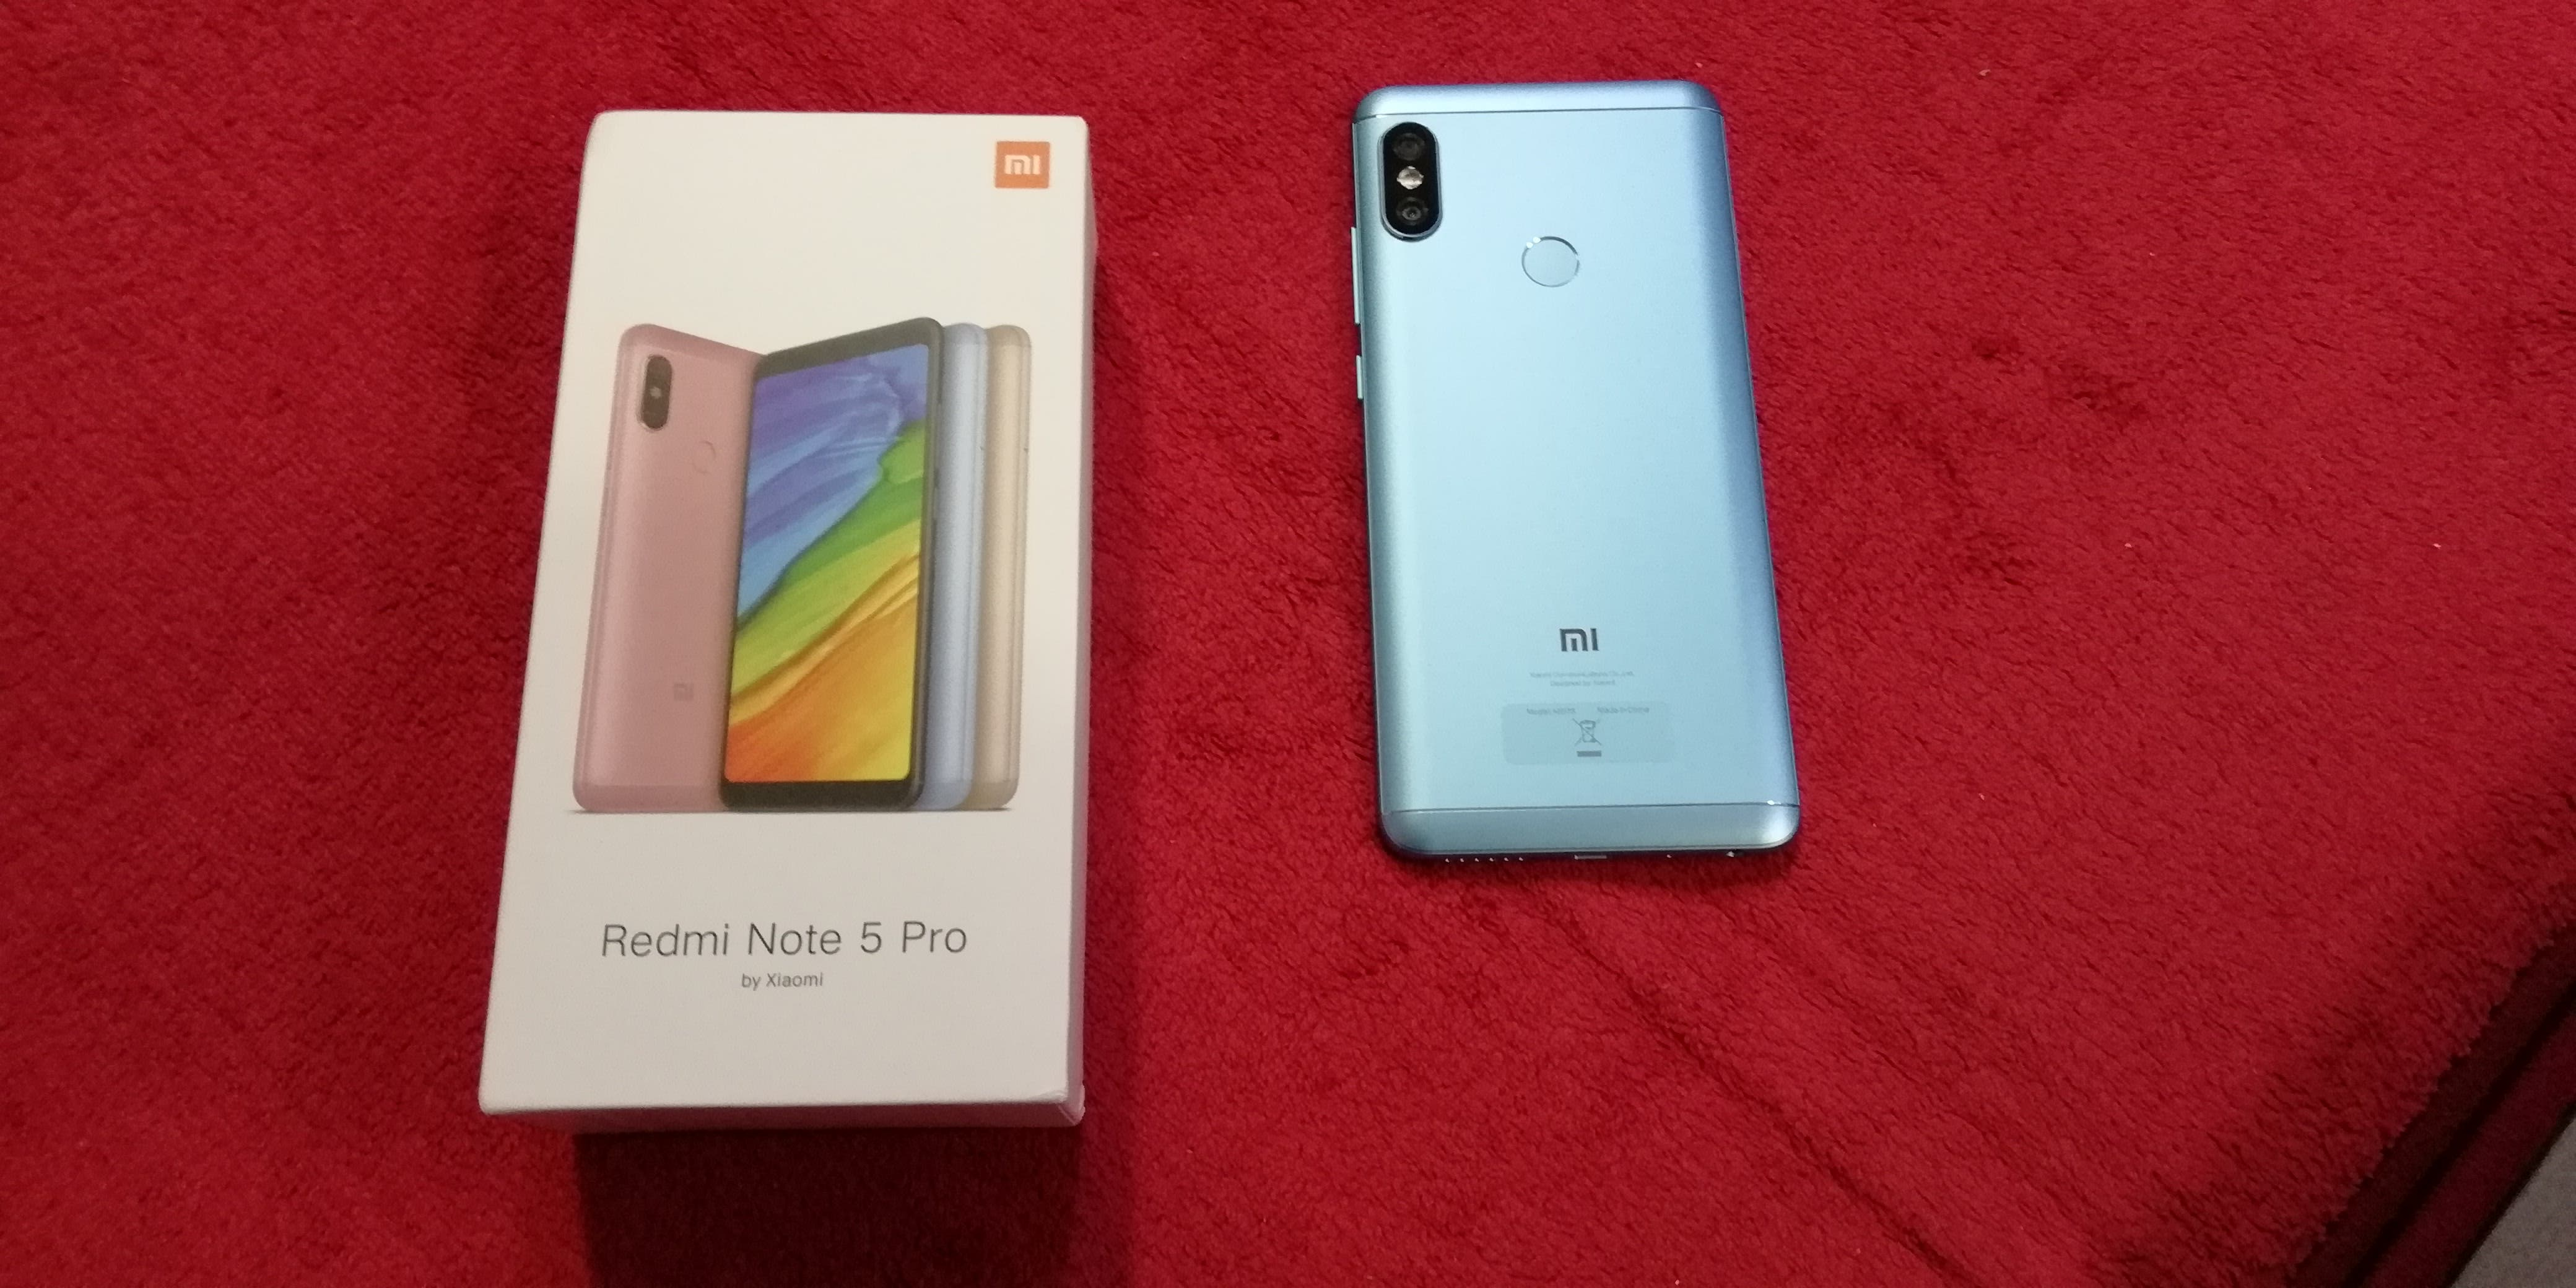 Redmi Note 5 Pro: Unboxing